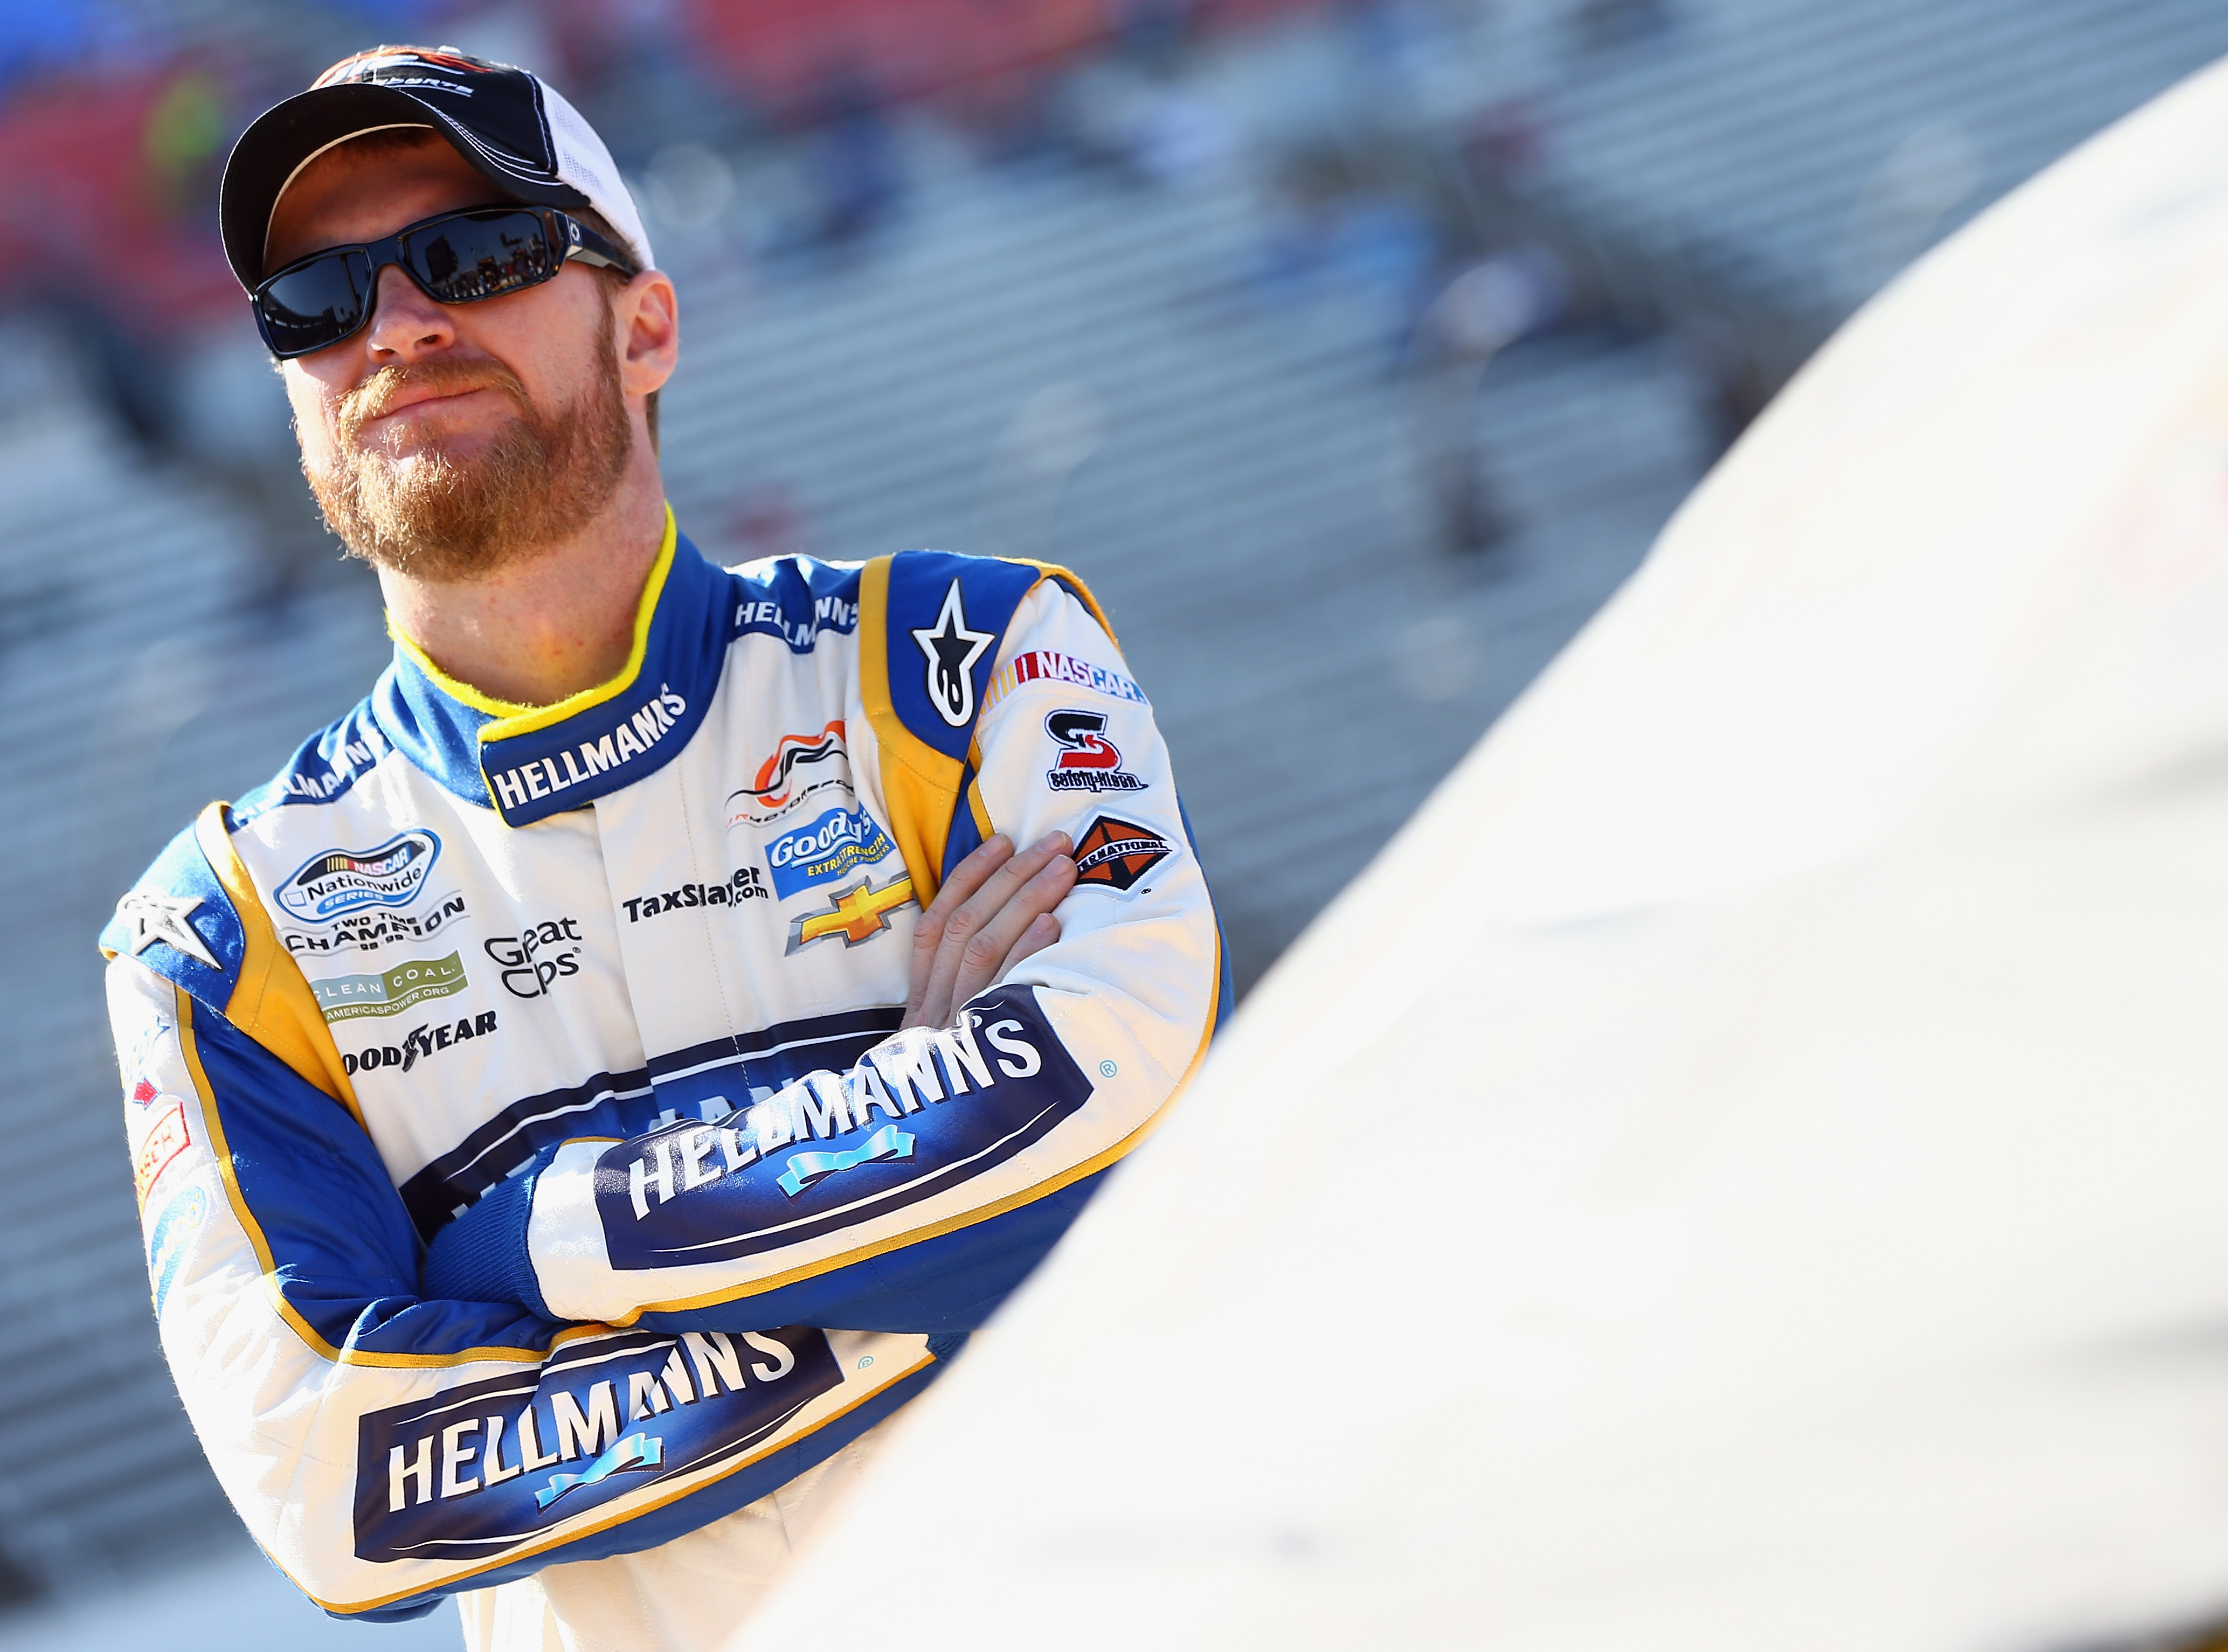 Dale Earnhardt Jr. is still frustrated by his father's absence during a big event.